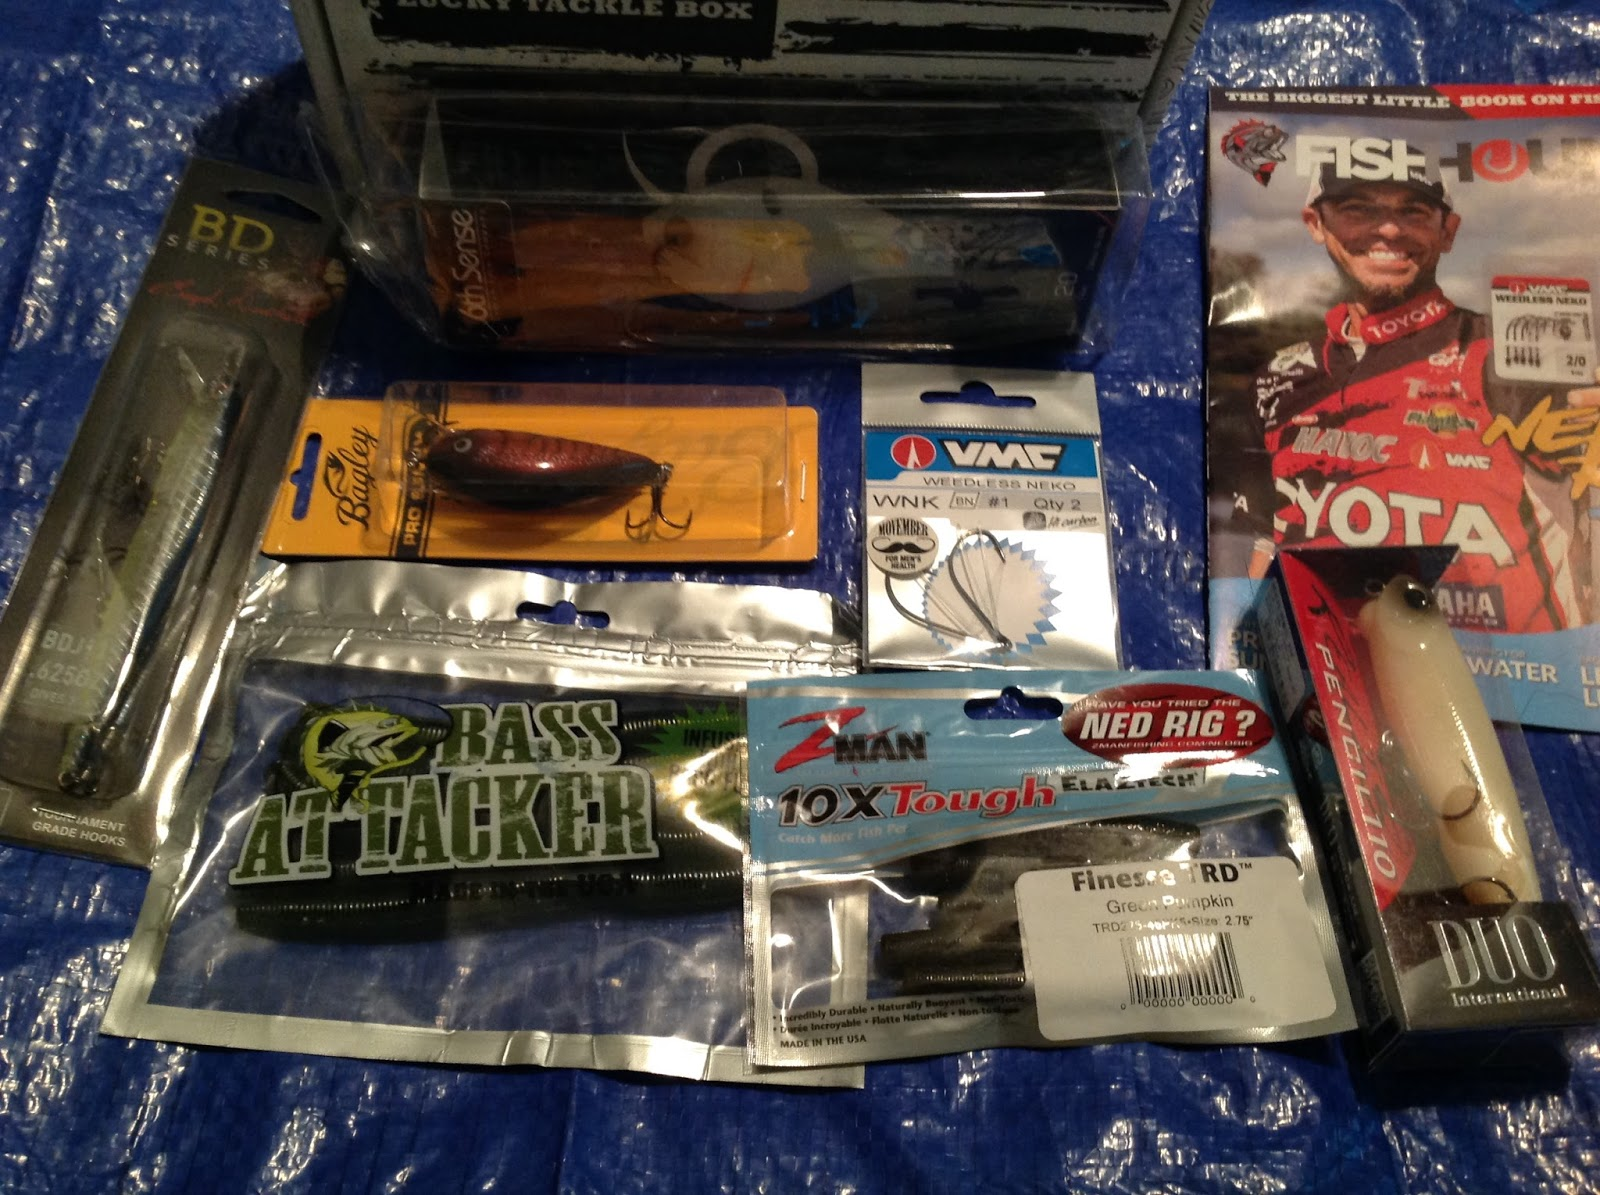 Cassandra m 39 s place lucky tackle box review luckytacklebox for Monthly fishing box